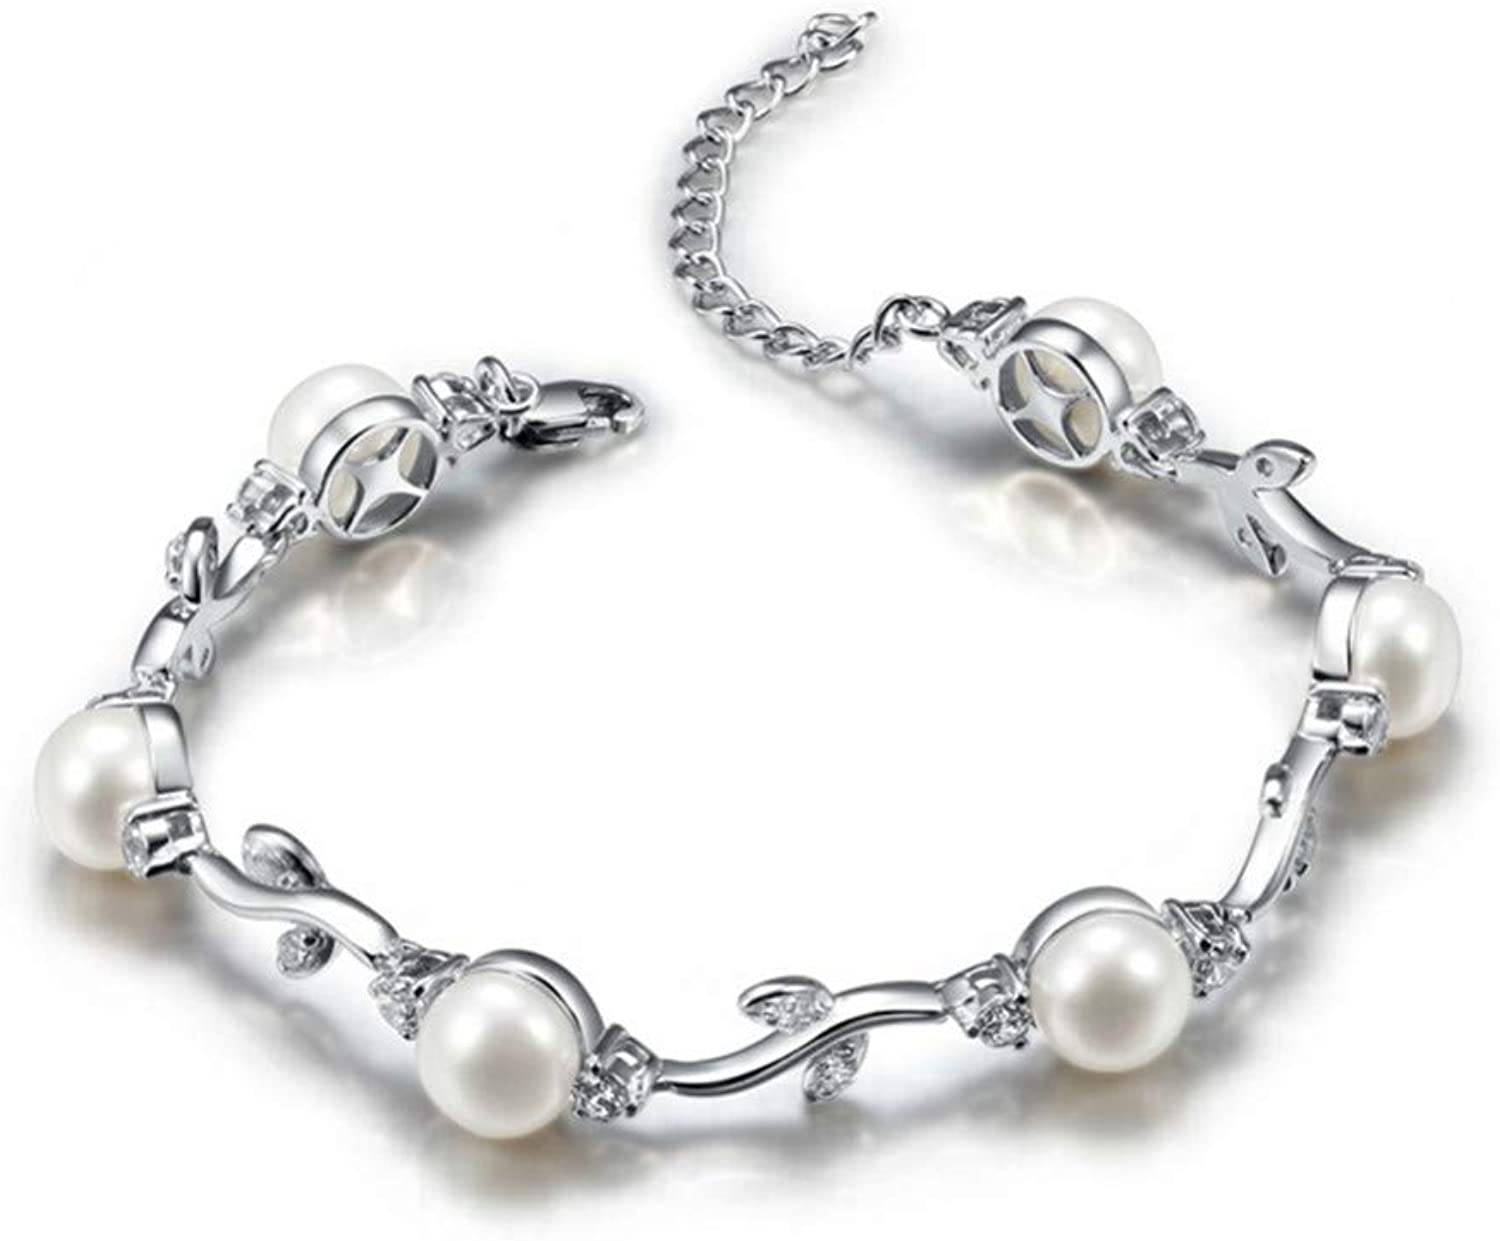 HUSHOUZHUO 925 Sterling Silver Bracelet Jewelry with 6Pcs 7.58Mm Natural Freshwater Pearls High Luster Silver Pearl Bracelet